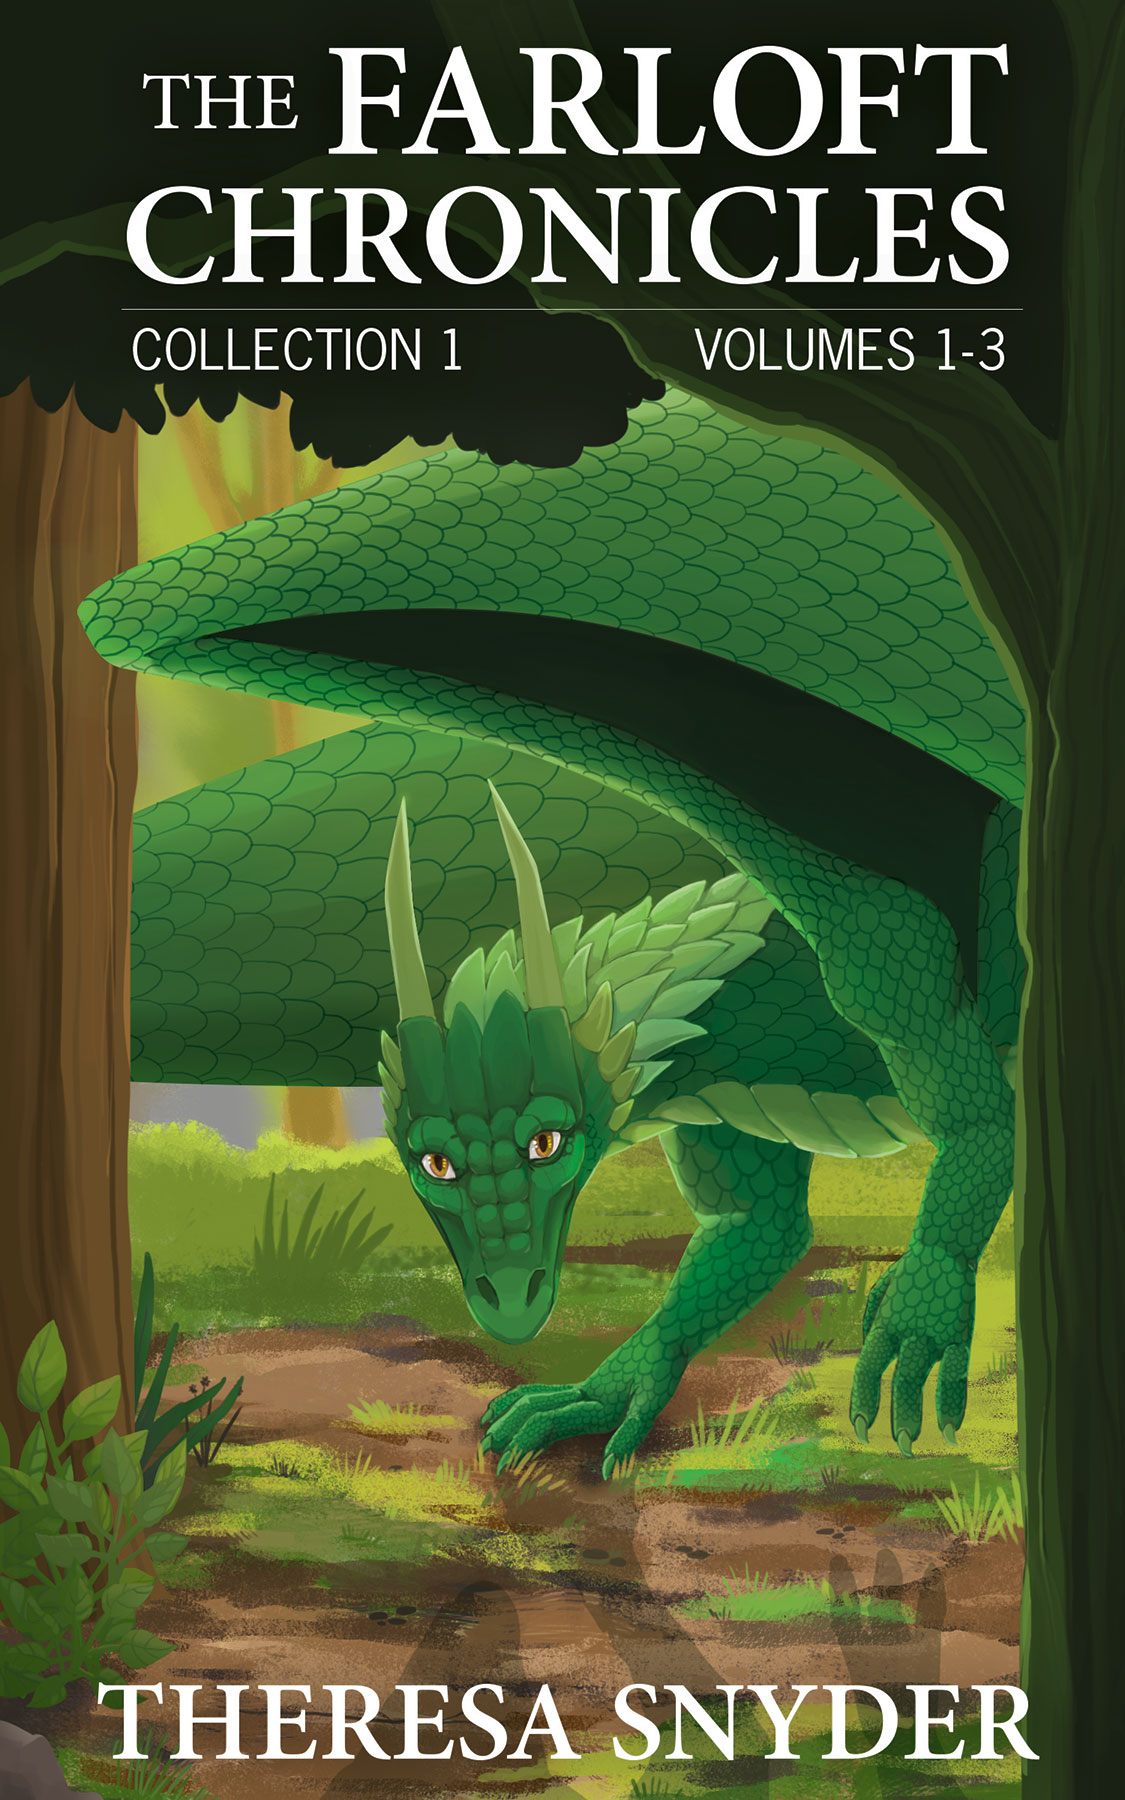 The Farloft Chronicles, Collection 1